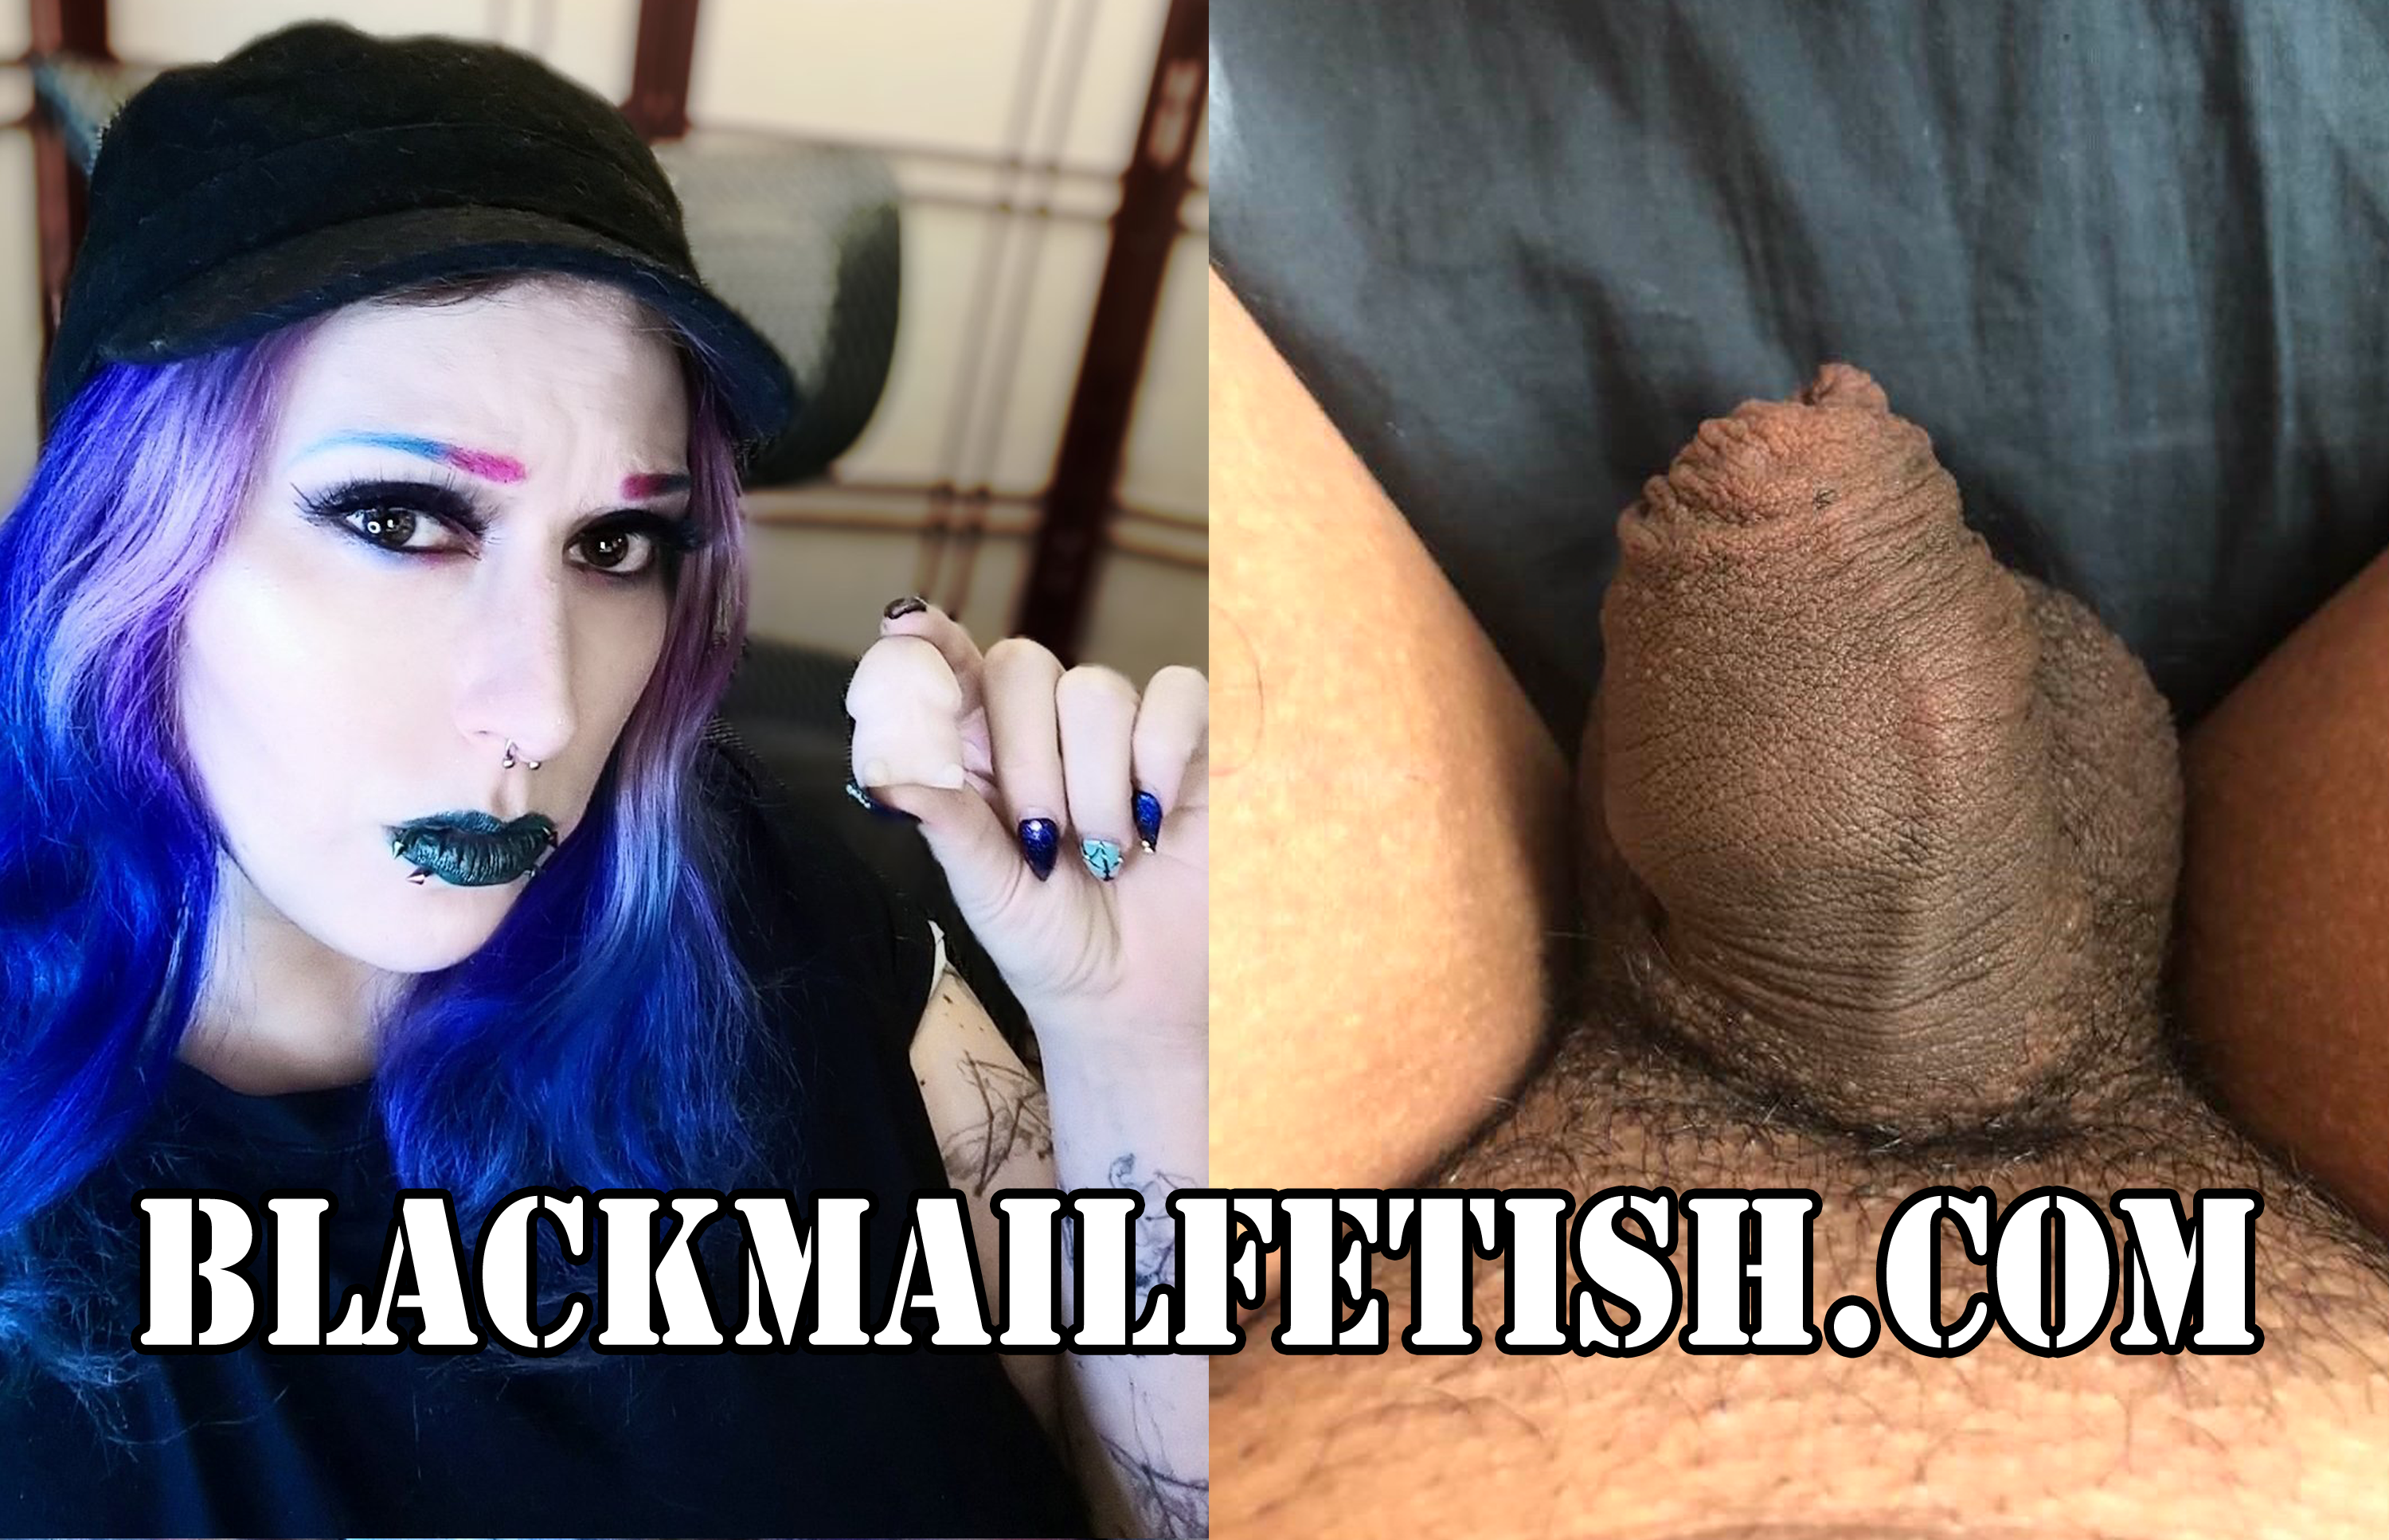 Blackmail fetish loser rishabh exposed sph humiliation